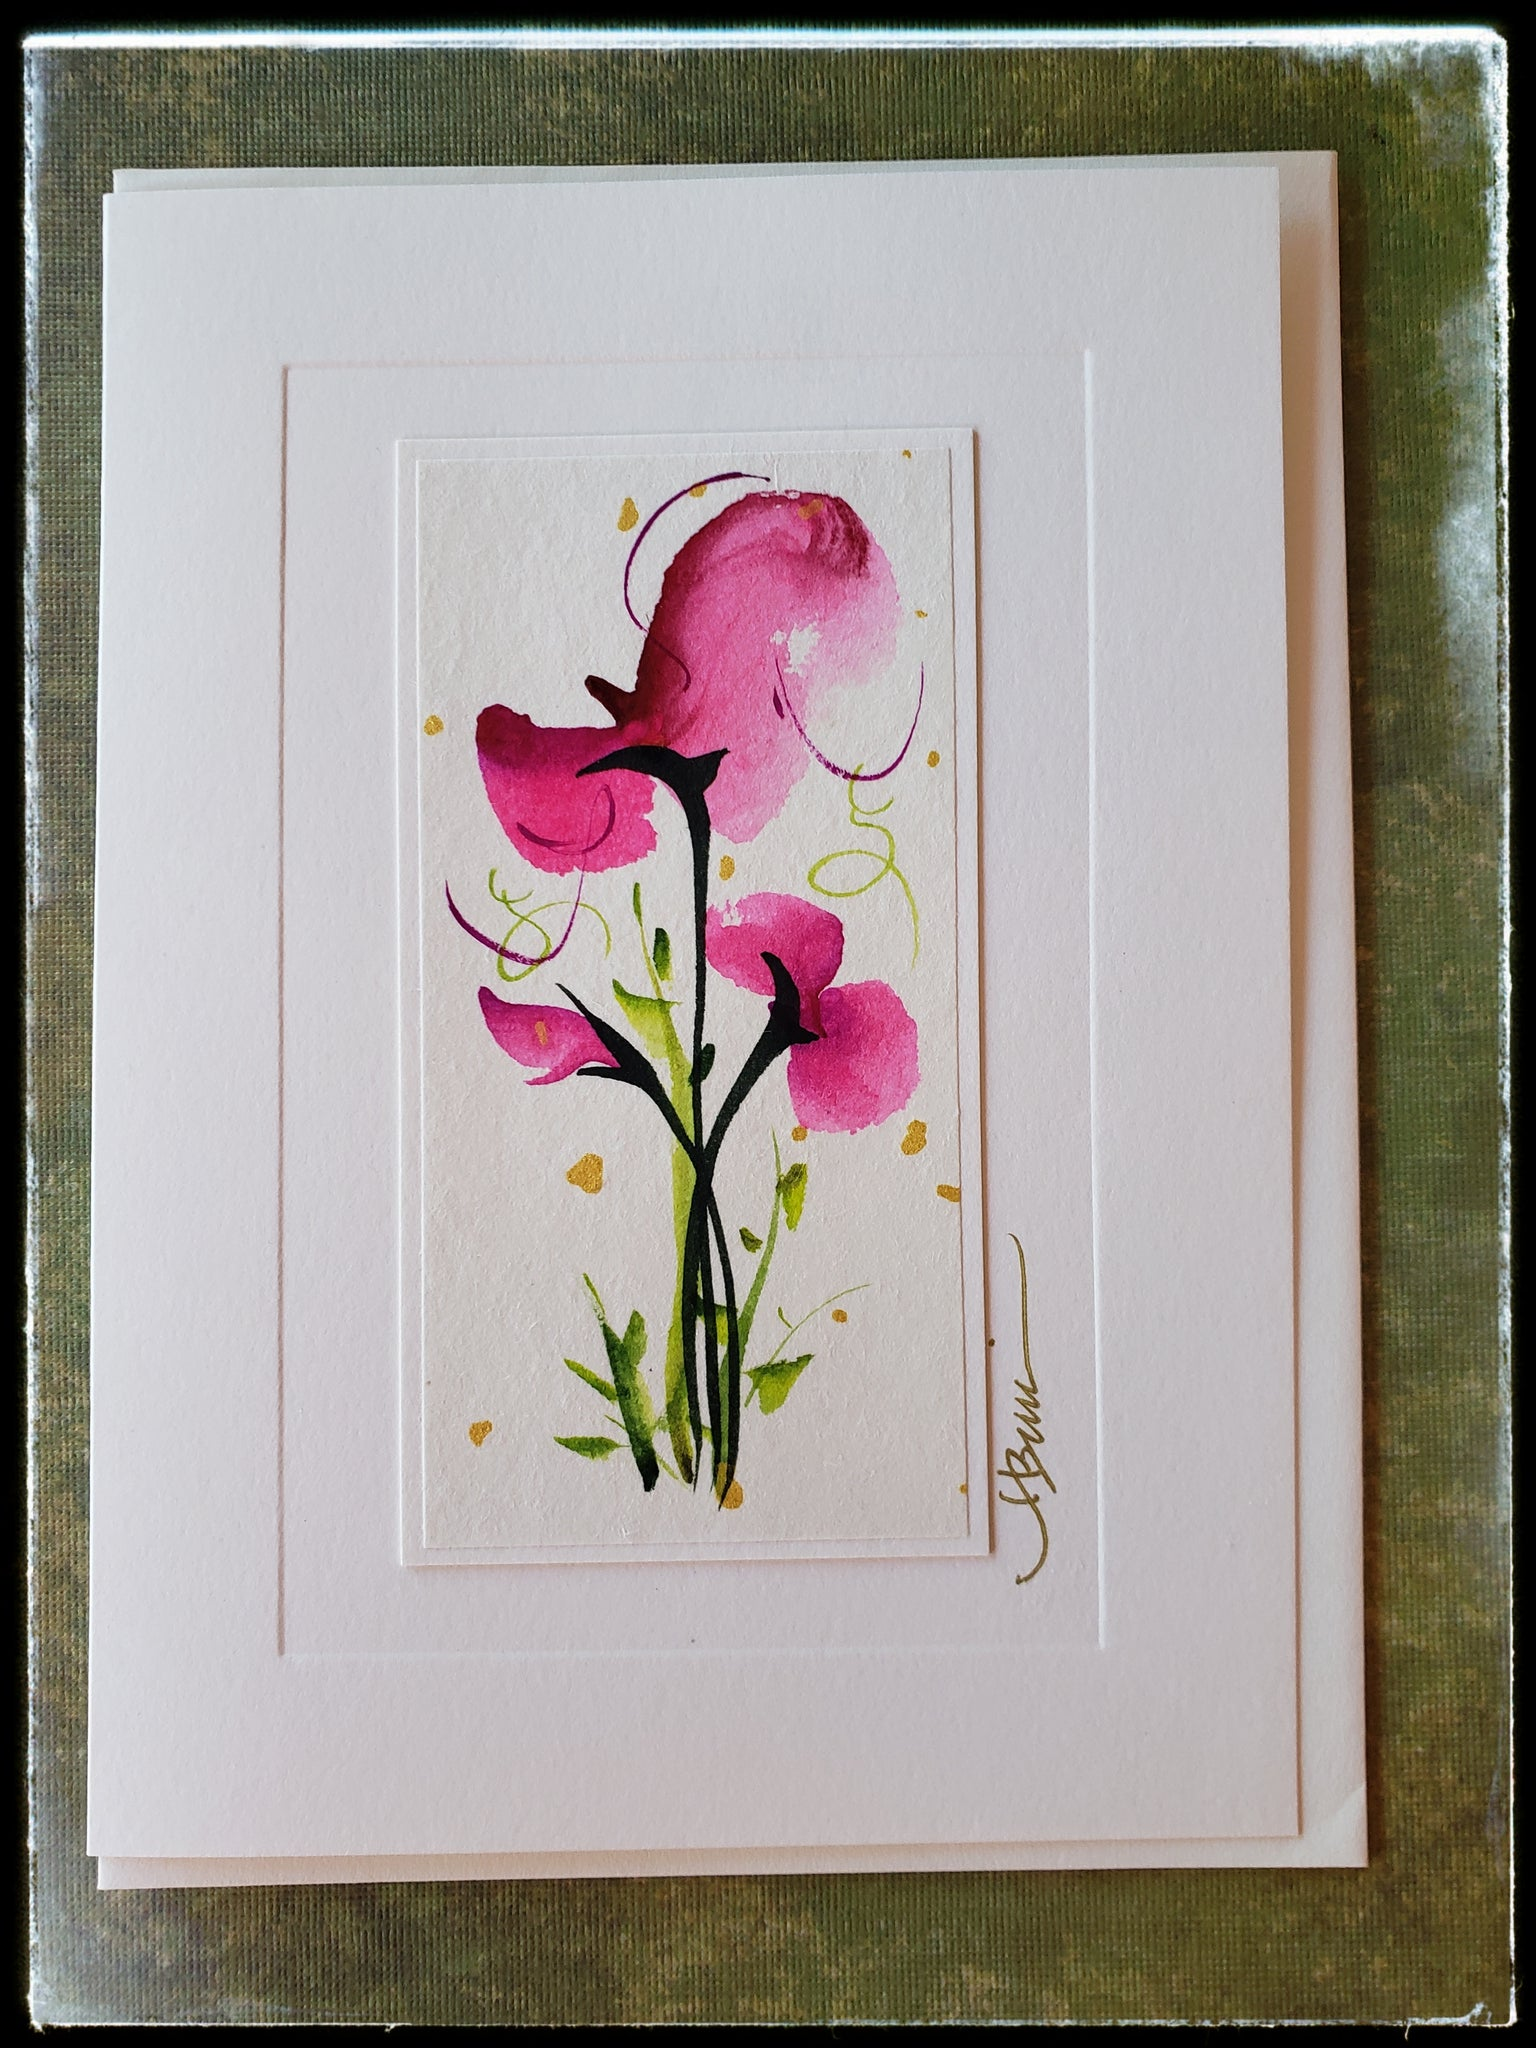 "April Sweet Pea Flower Hand Painted Card In constant bloom, it symbolizes lasting pleasure. Its delicate beauty is emblem of shyness and innocence.  Gold accents  Individually hand-painted on rice paper  Hand-painted images will vary  BLANK INSIDE  5.5"" x 7.5"" with envelope ADA The Gilded Page Santa Fe"